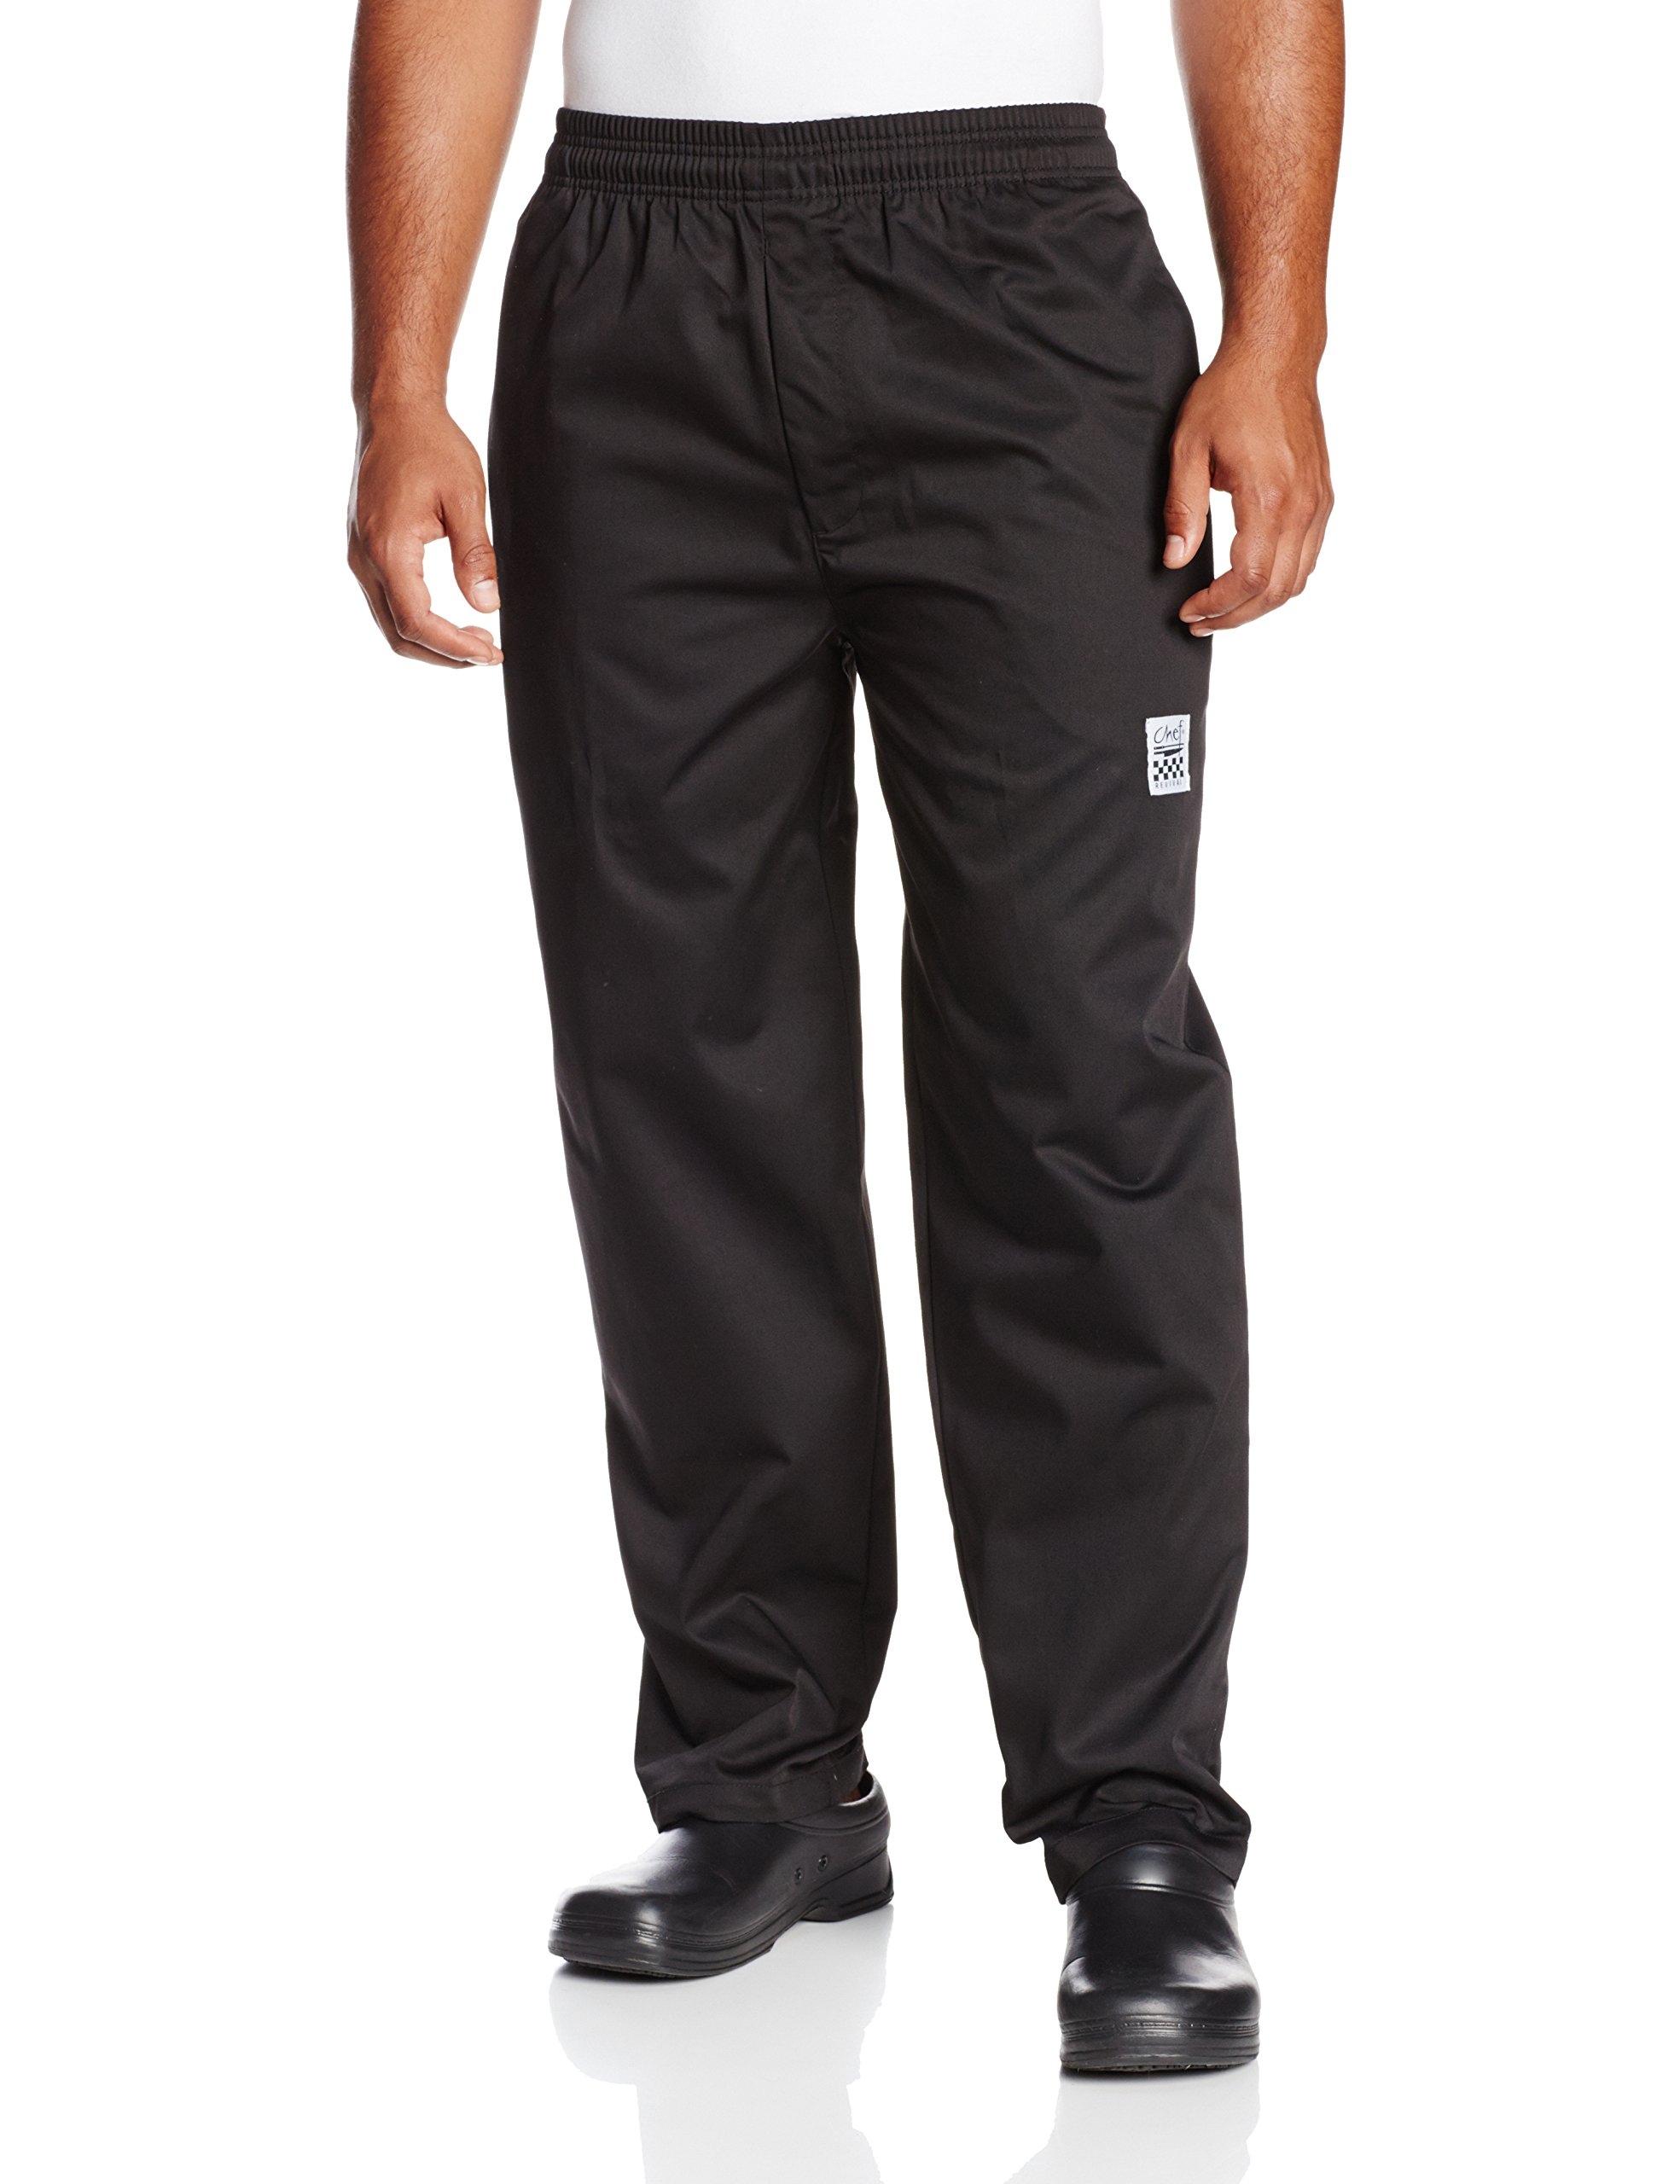 Chef Revival P002BK Poly Cotton Blend E-Z Fit Pant with 2 Side and 2 Rear Pockets, Medium, Black by Chef Revival